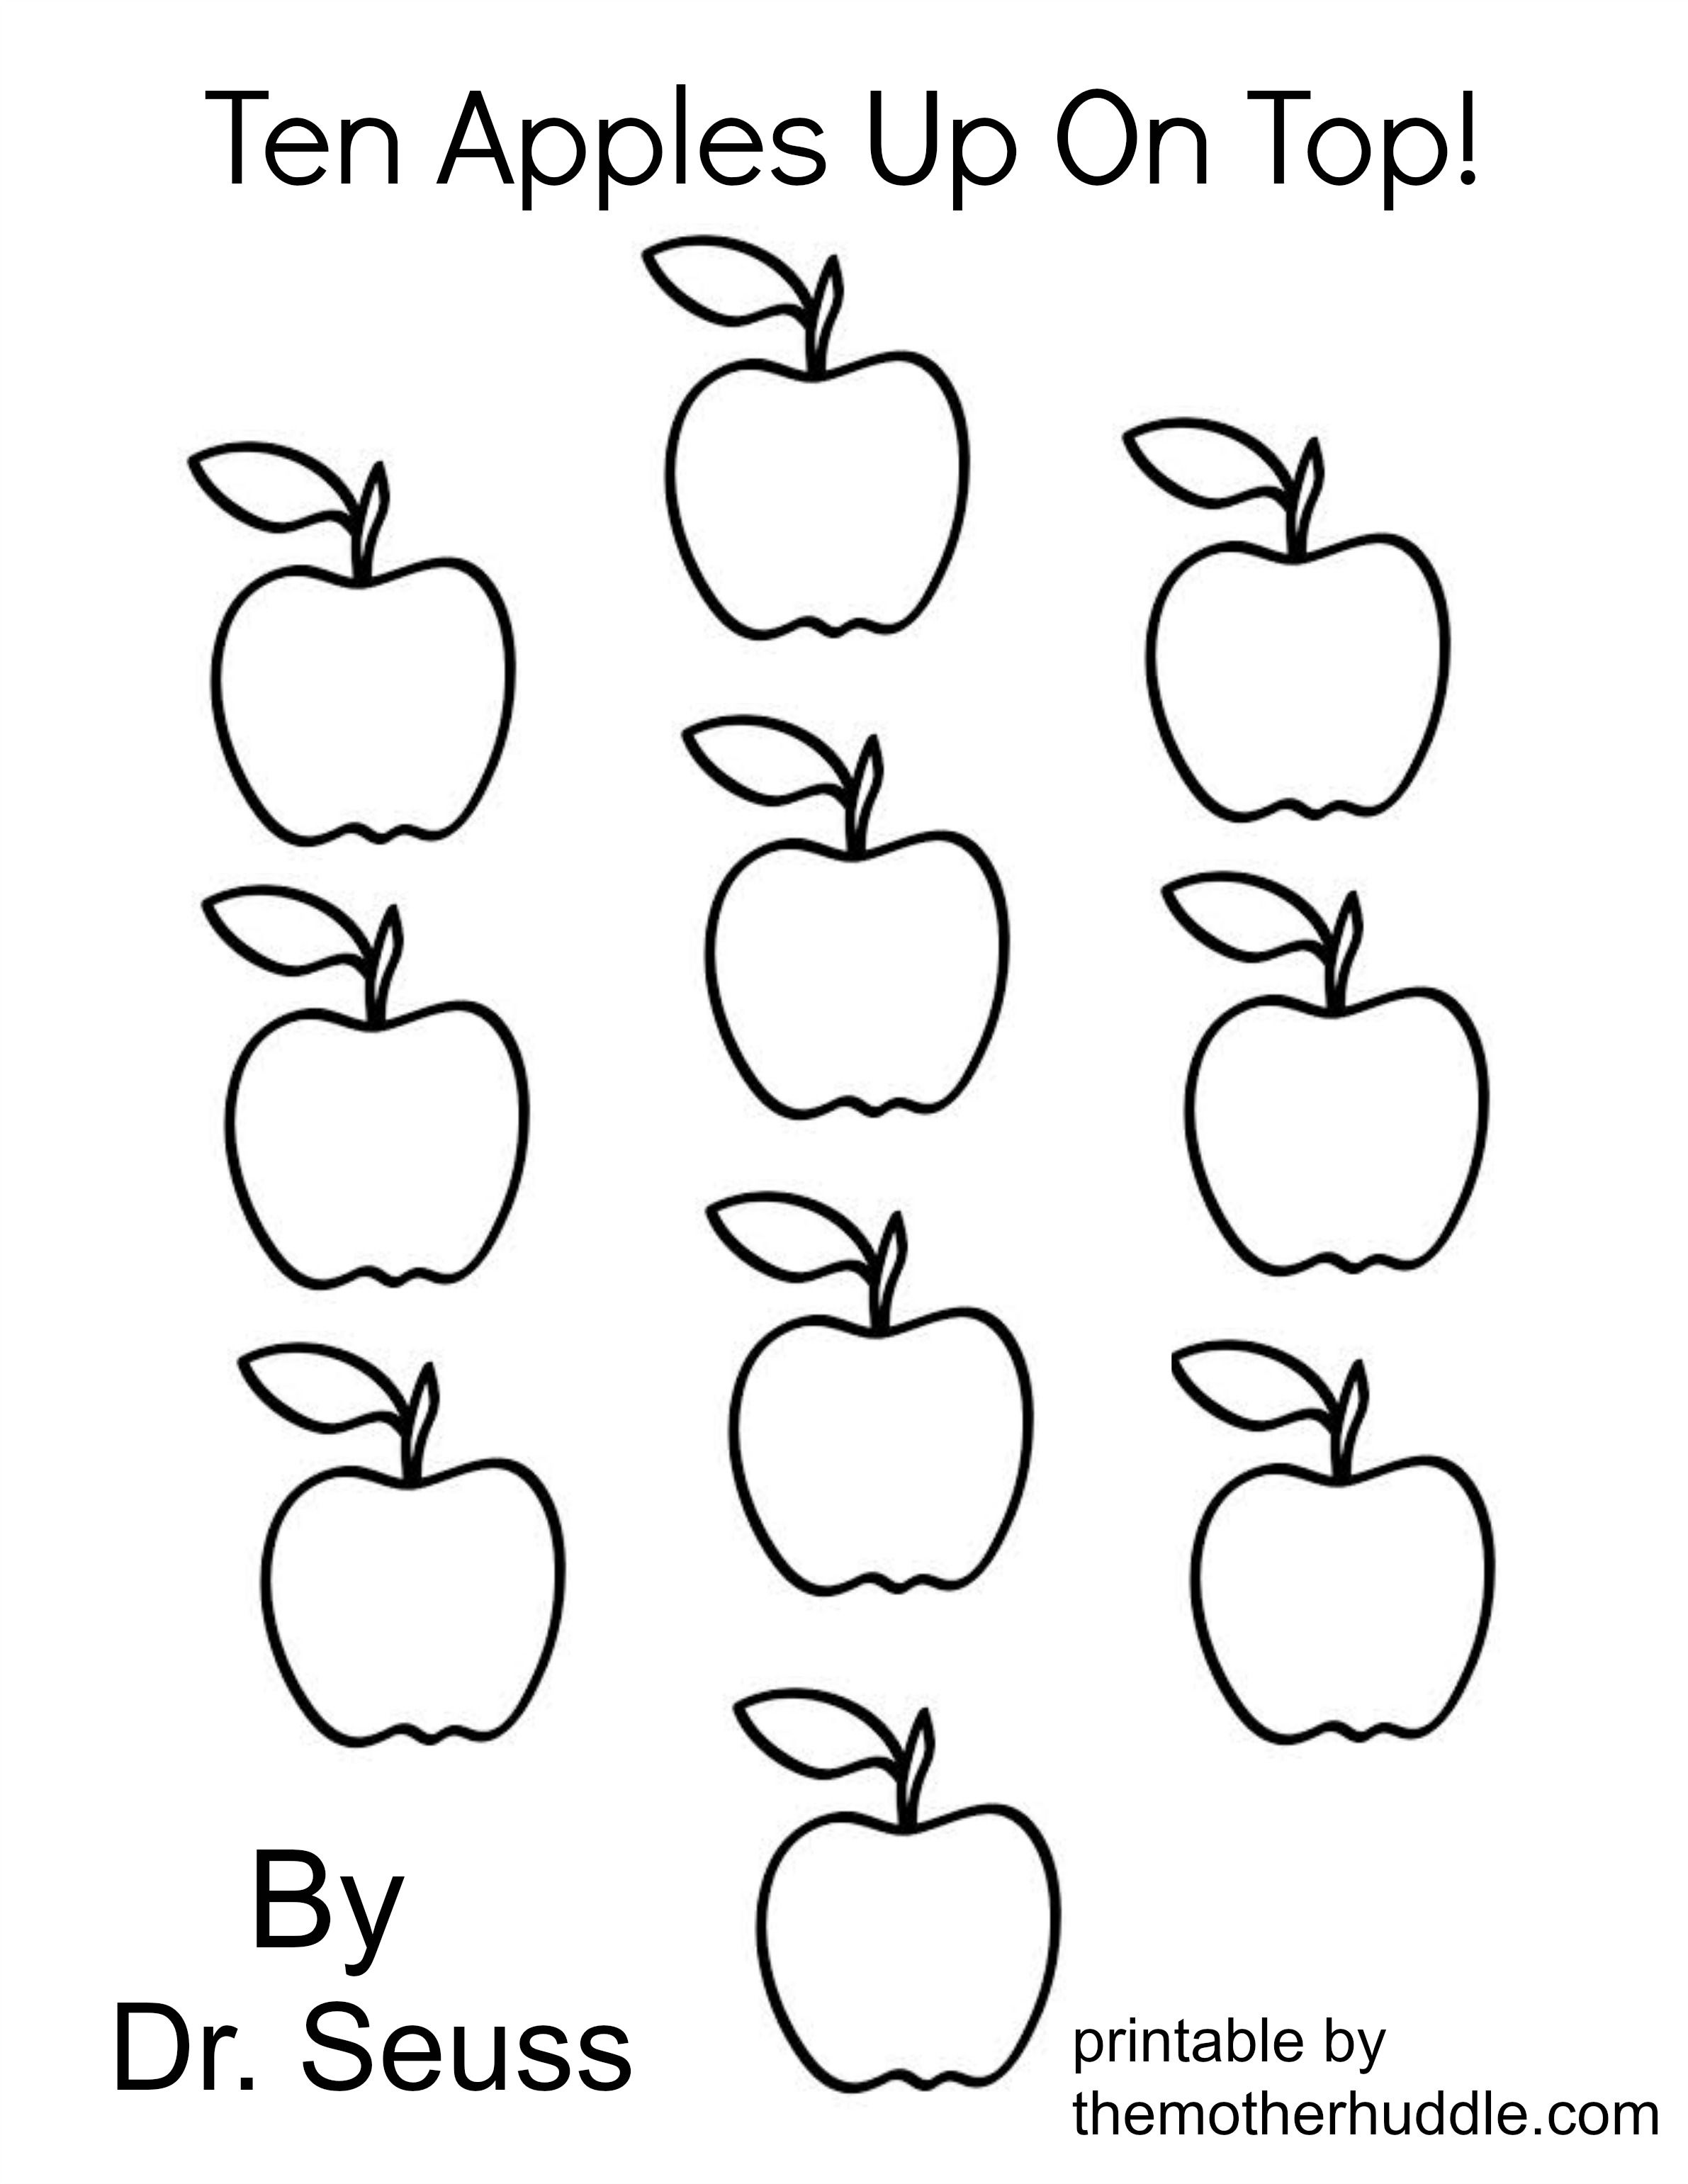 Dr. Seuss March Series – Ten Apples Up On Top (Free Printable) | Dr ...